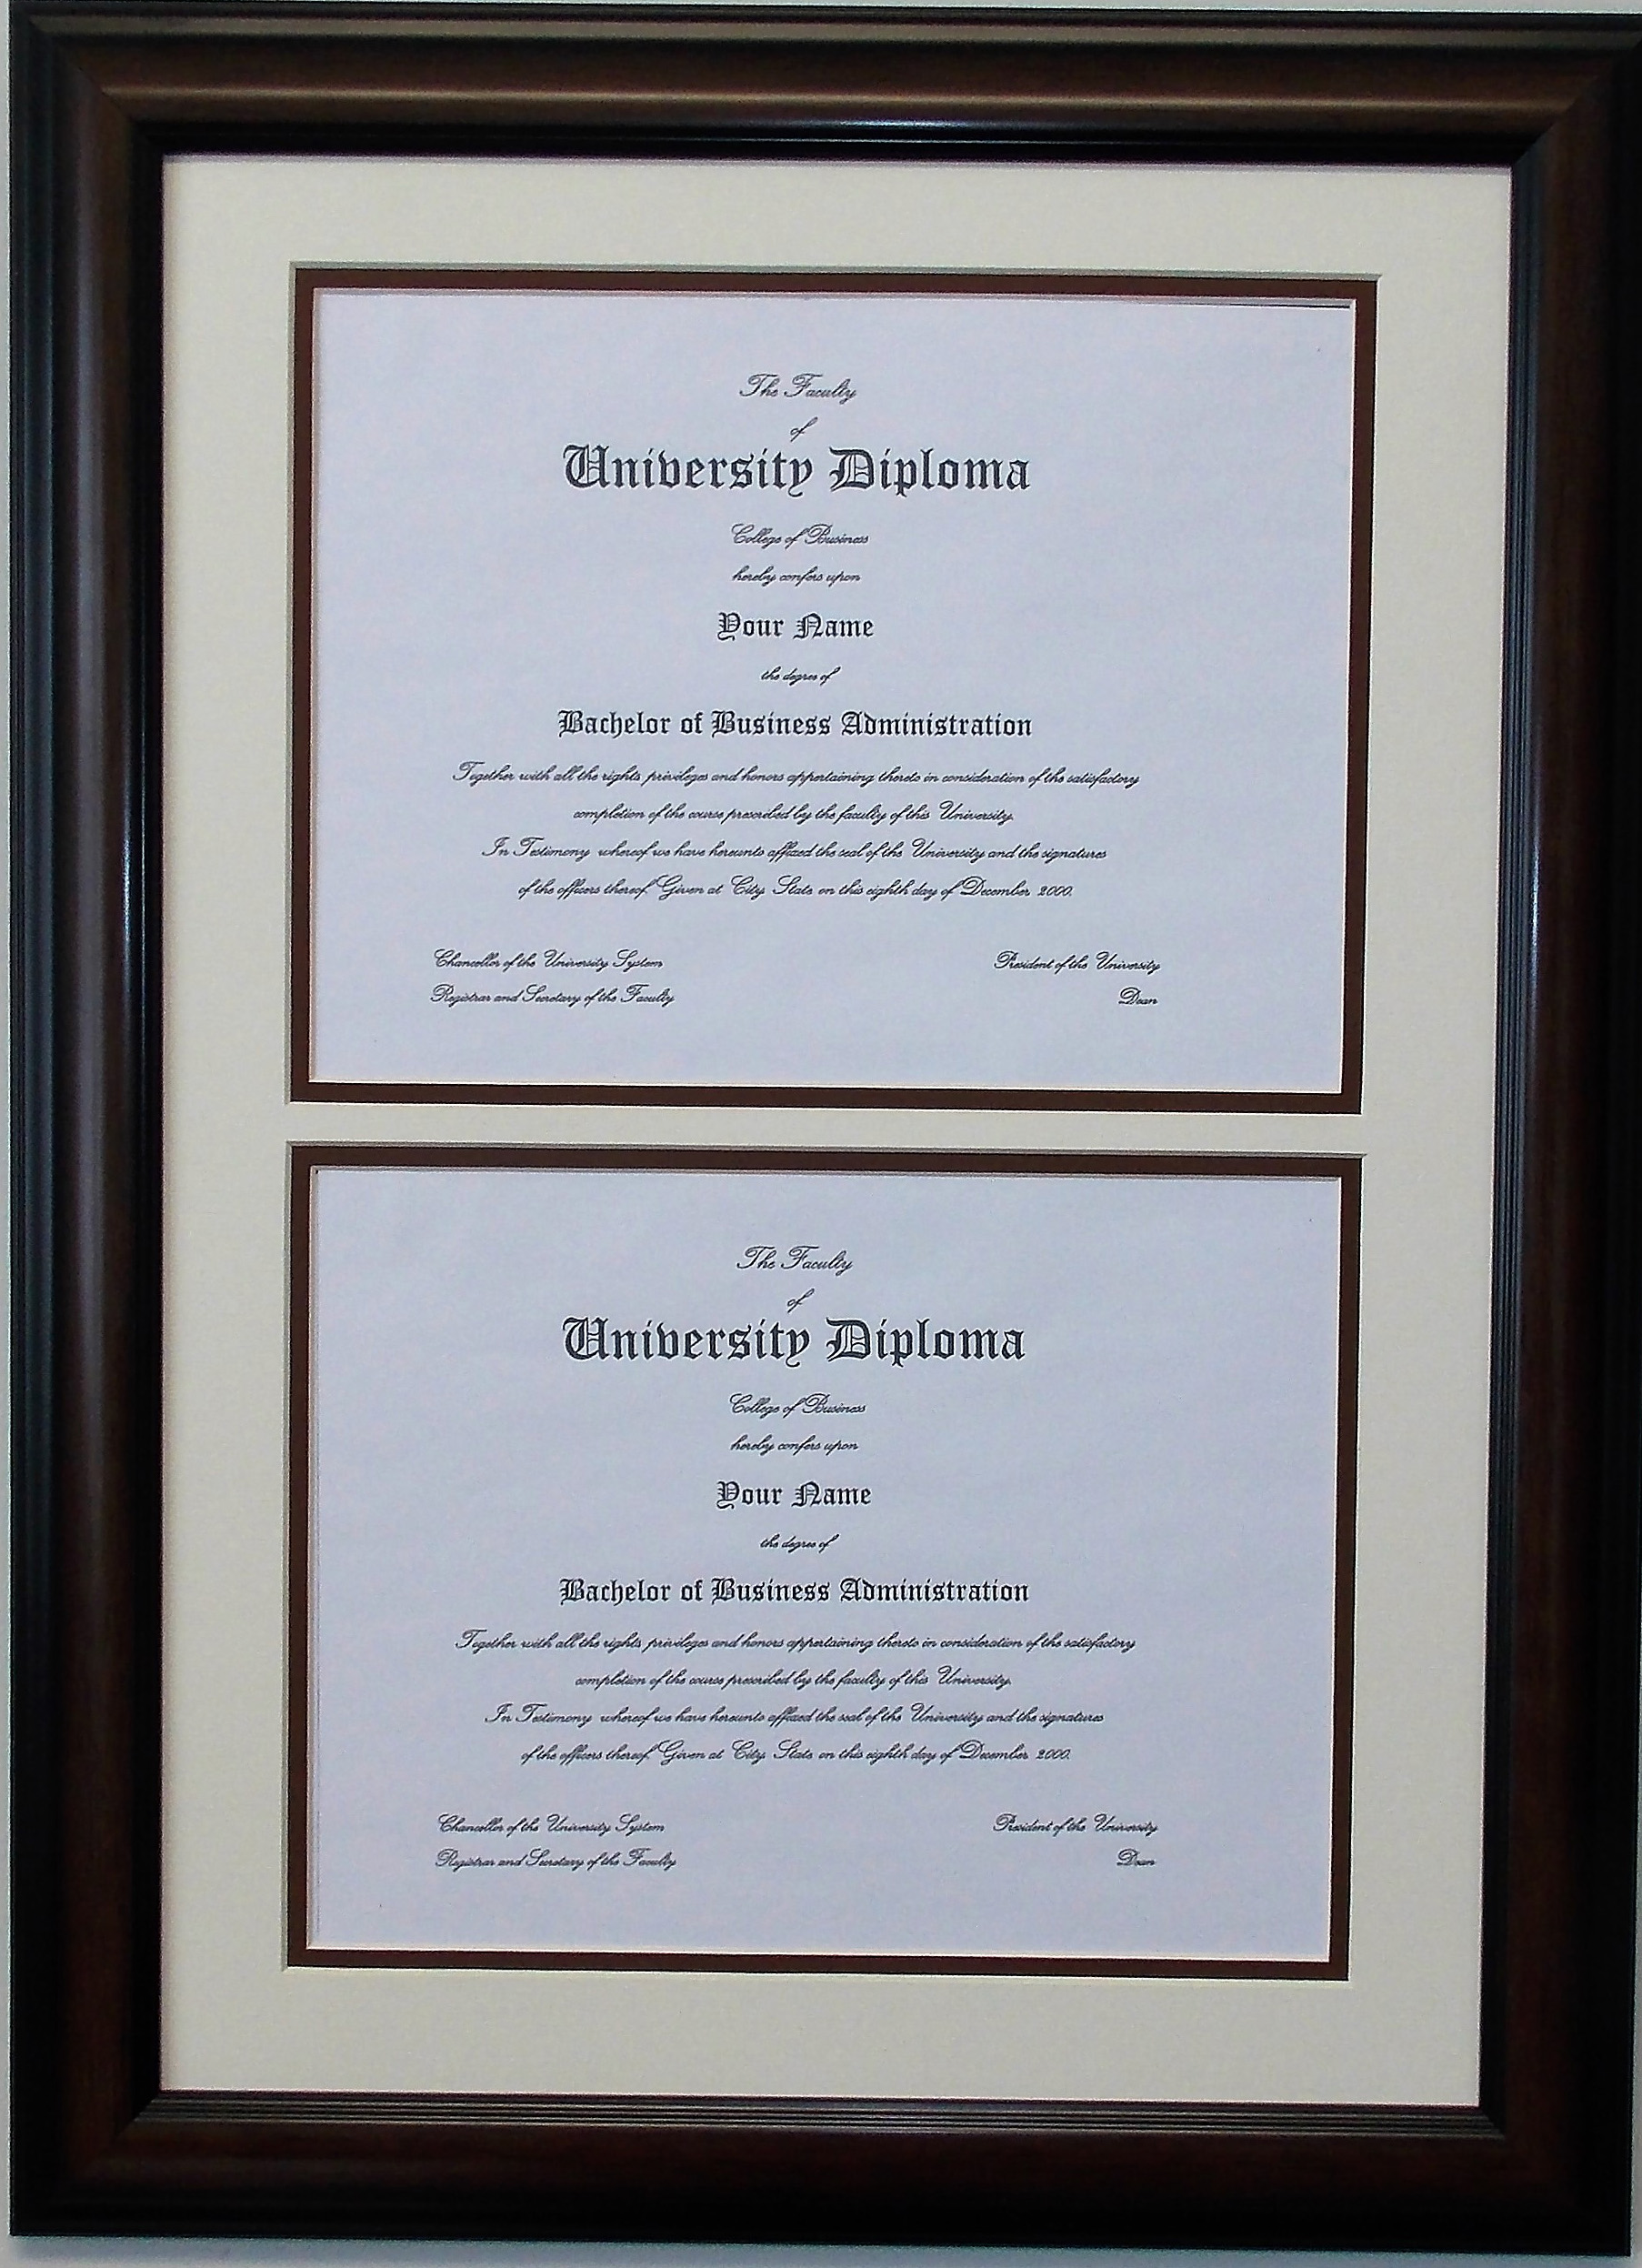 Double Diploma Document Certificate Openings Wood Picture Frame for ...